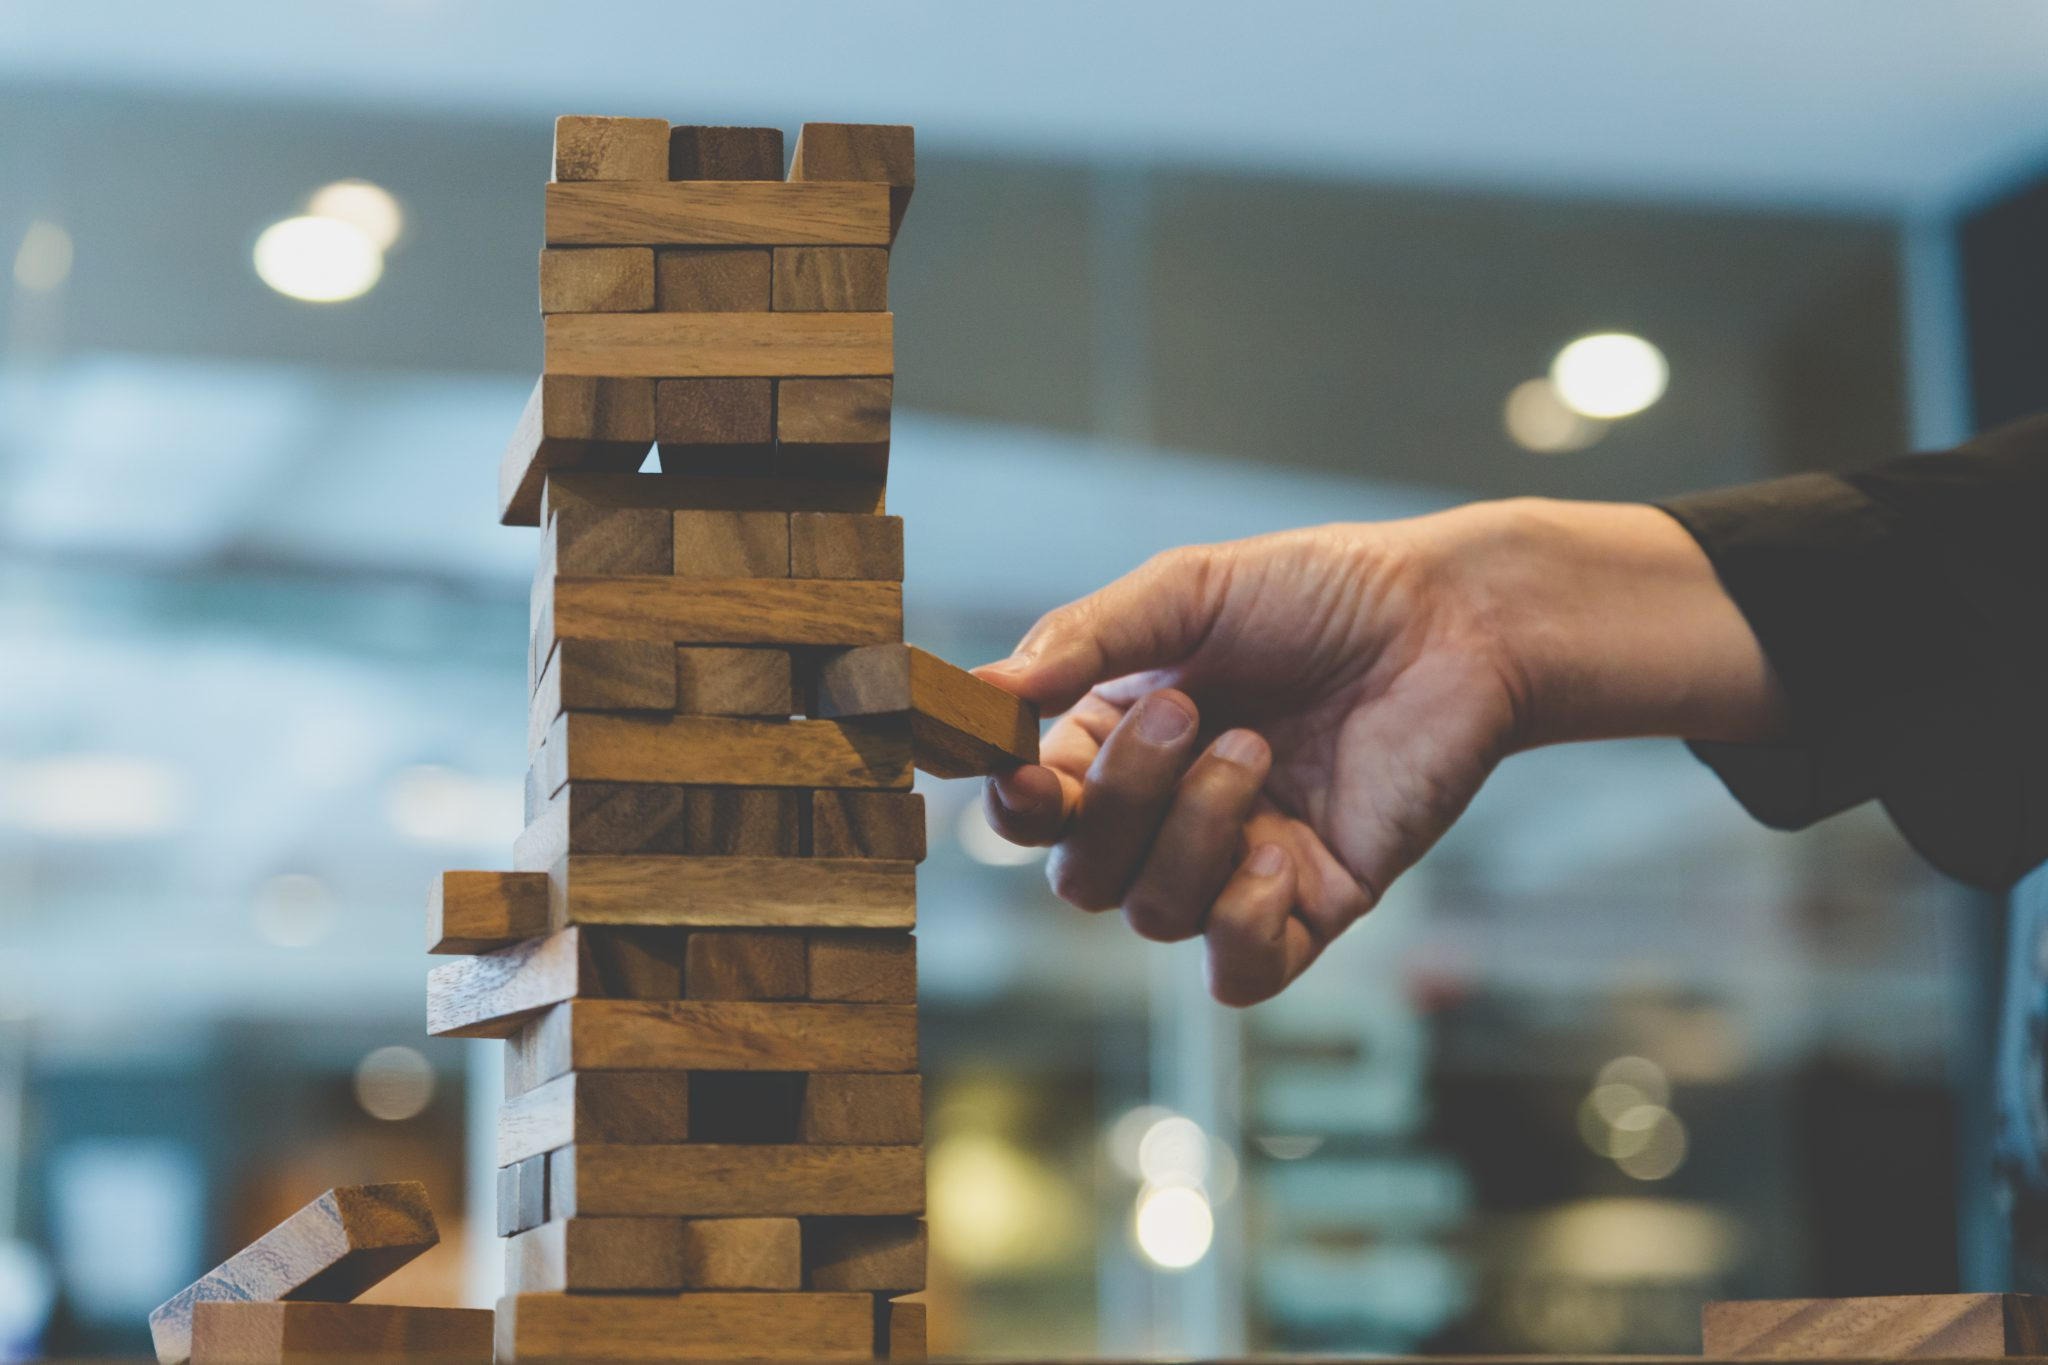 The game of Jenga shows How to Develop the Right Strategy to Win